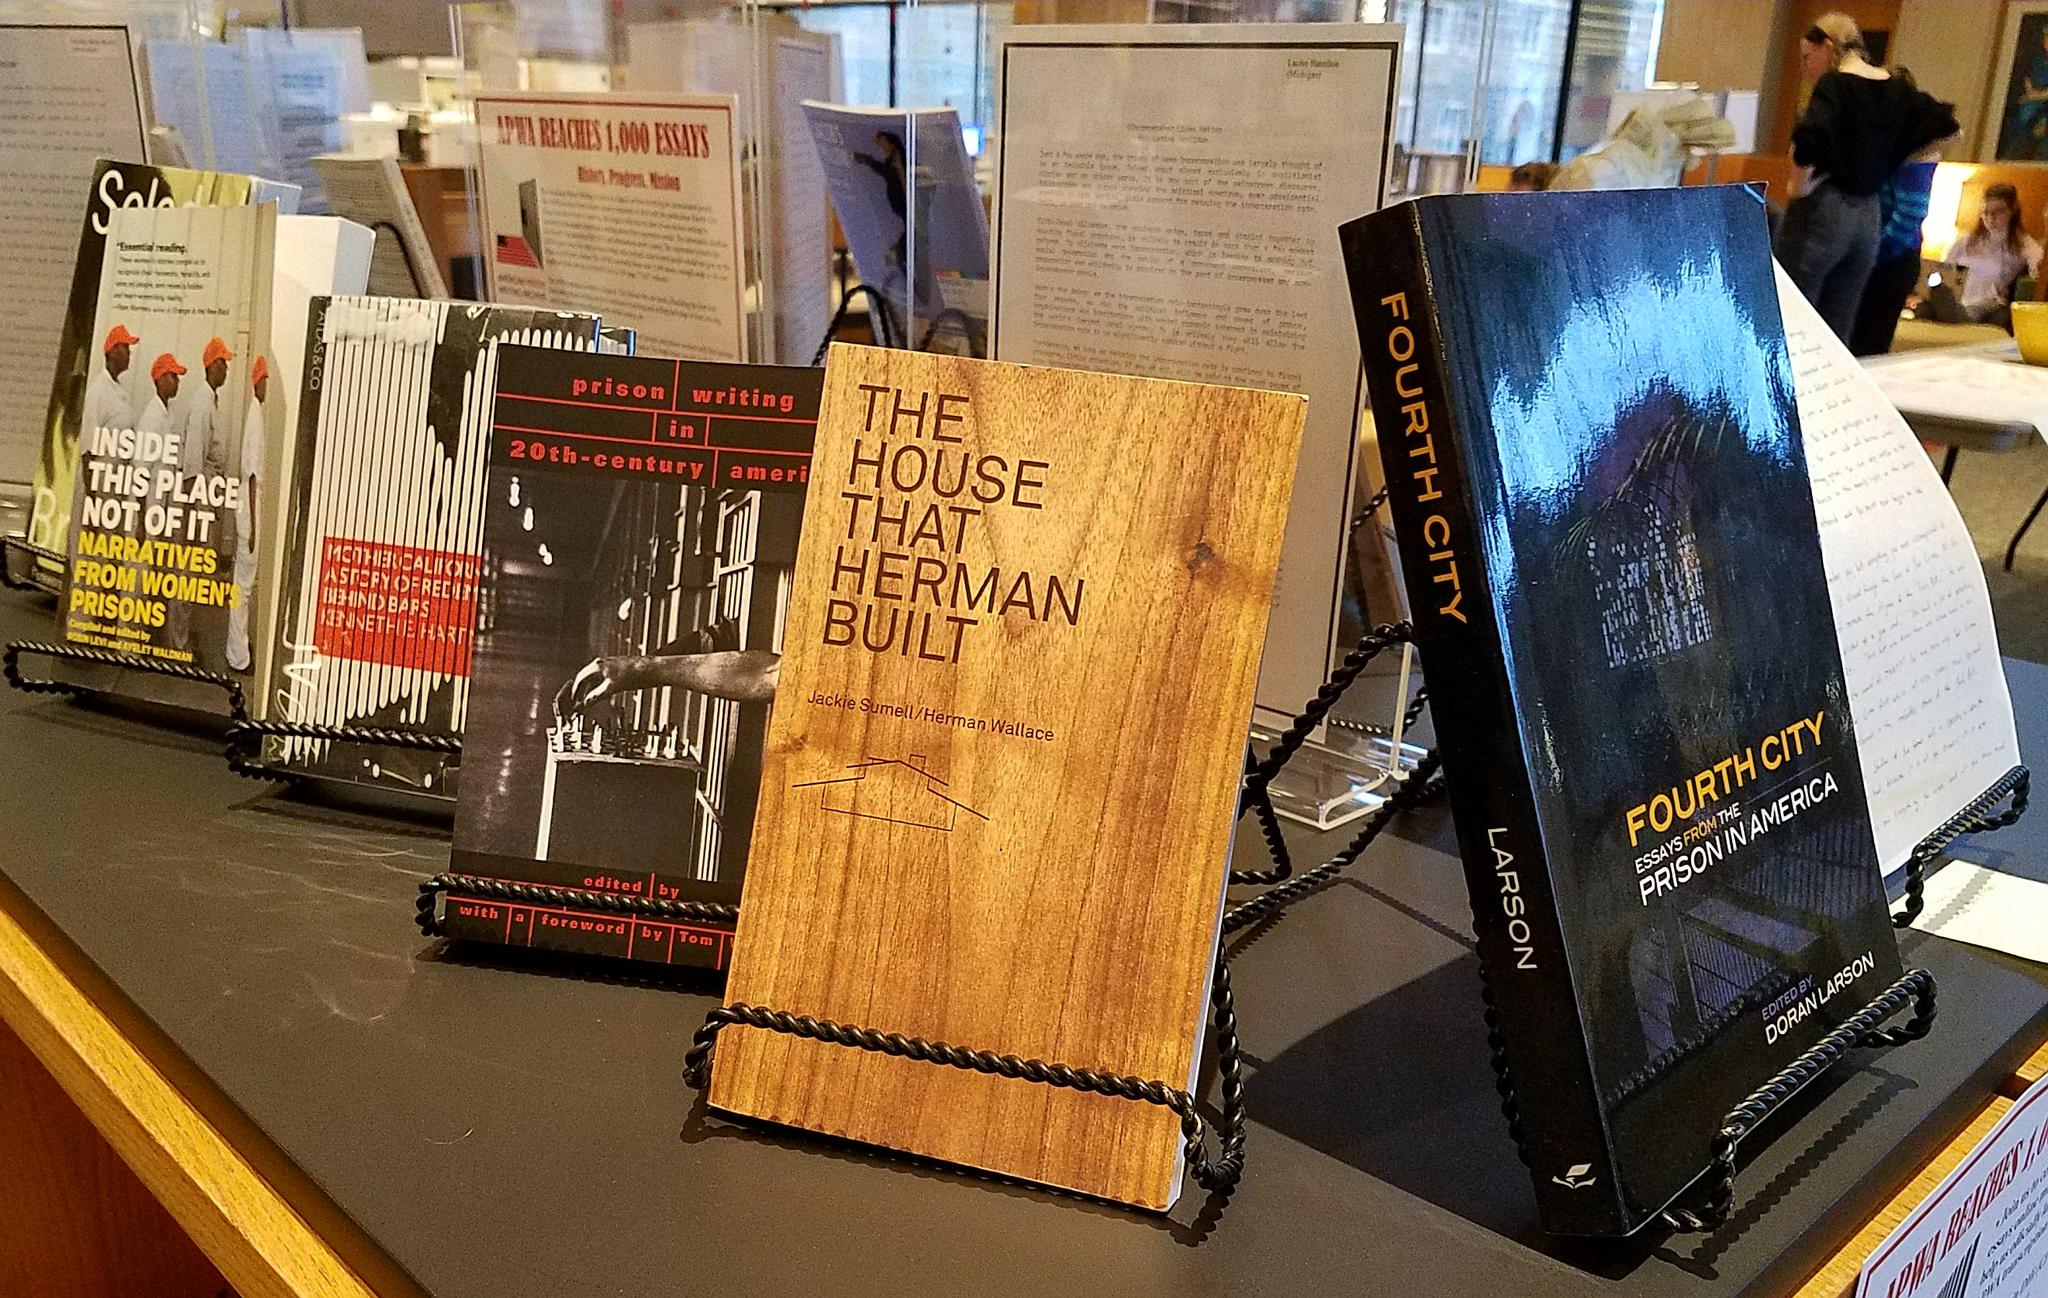 th essay entered into american prison writing archive news  american prison writing archive exhibit in burke library photo vige barrie